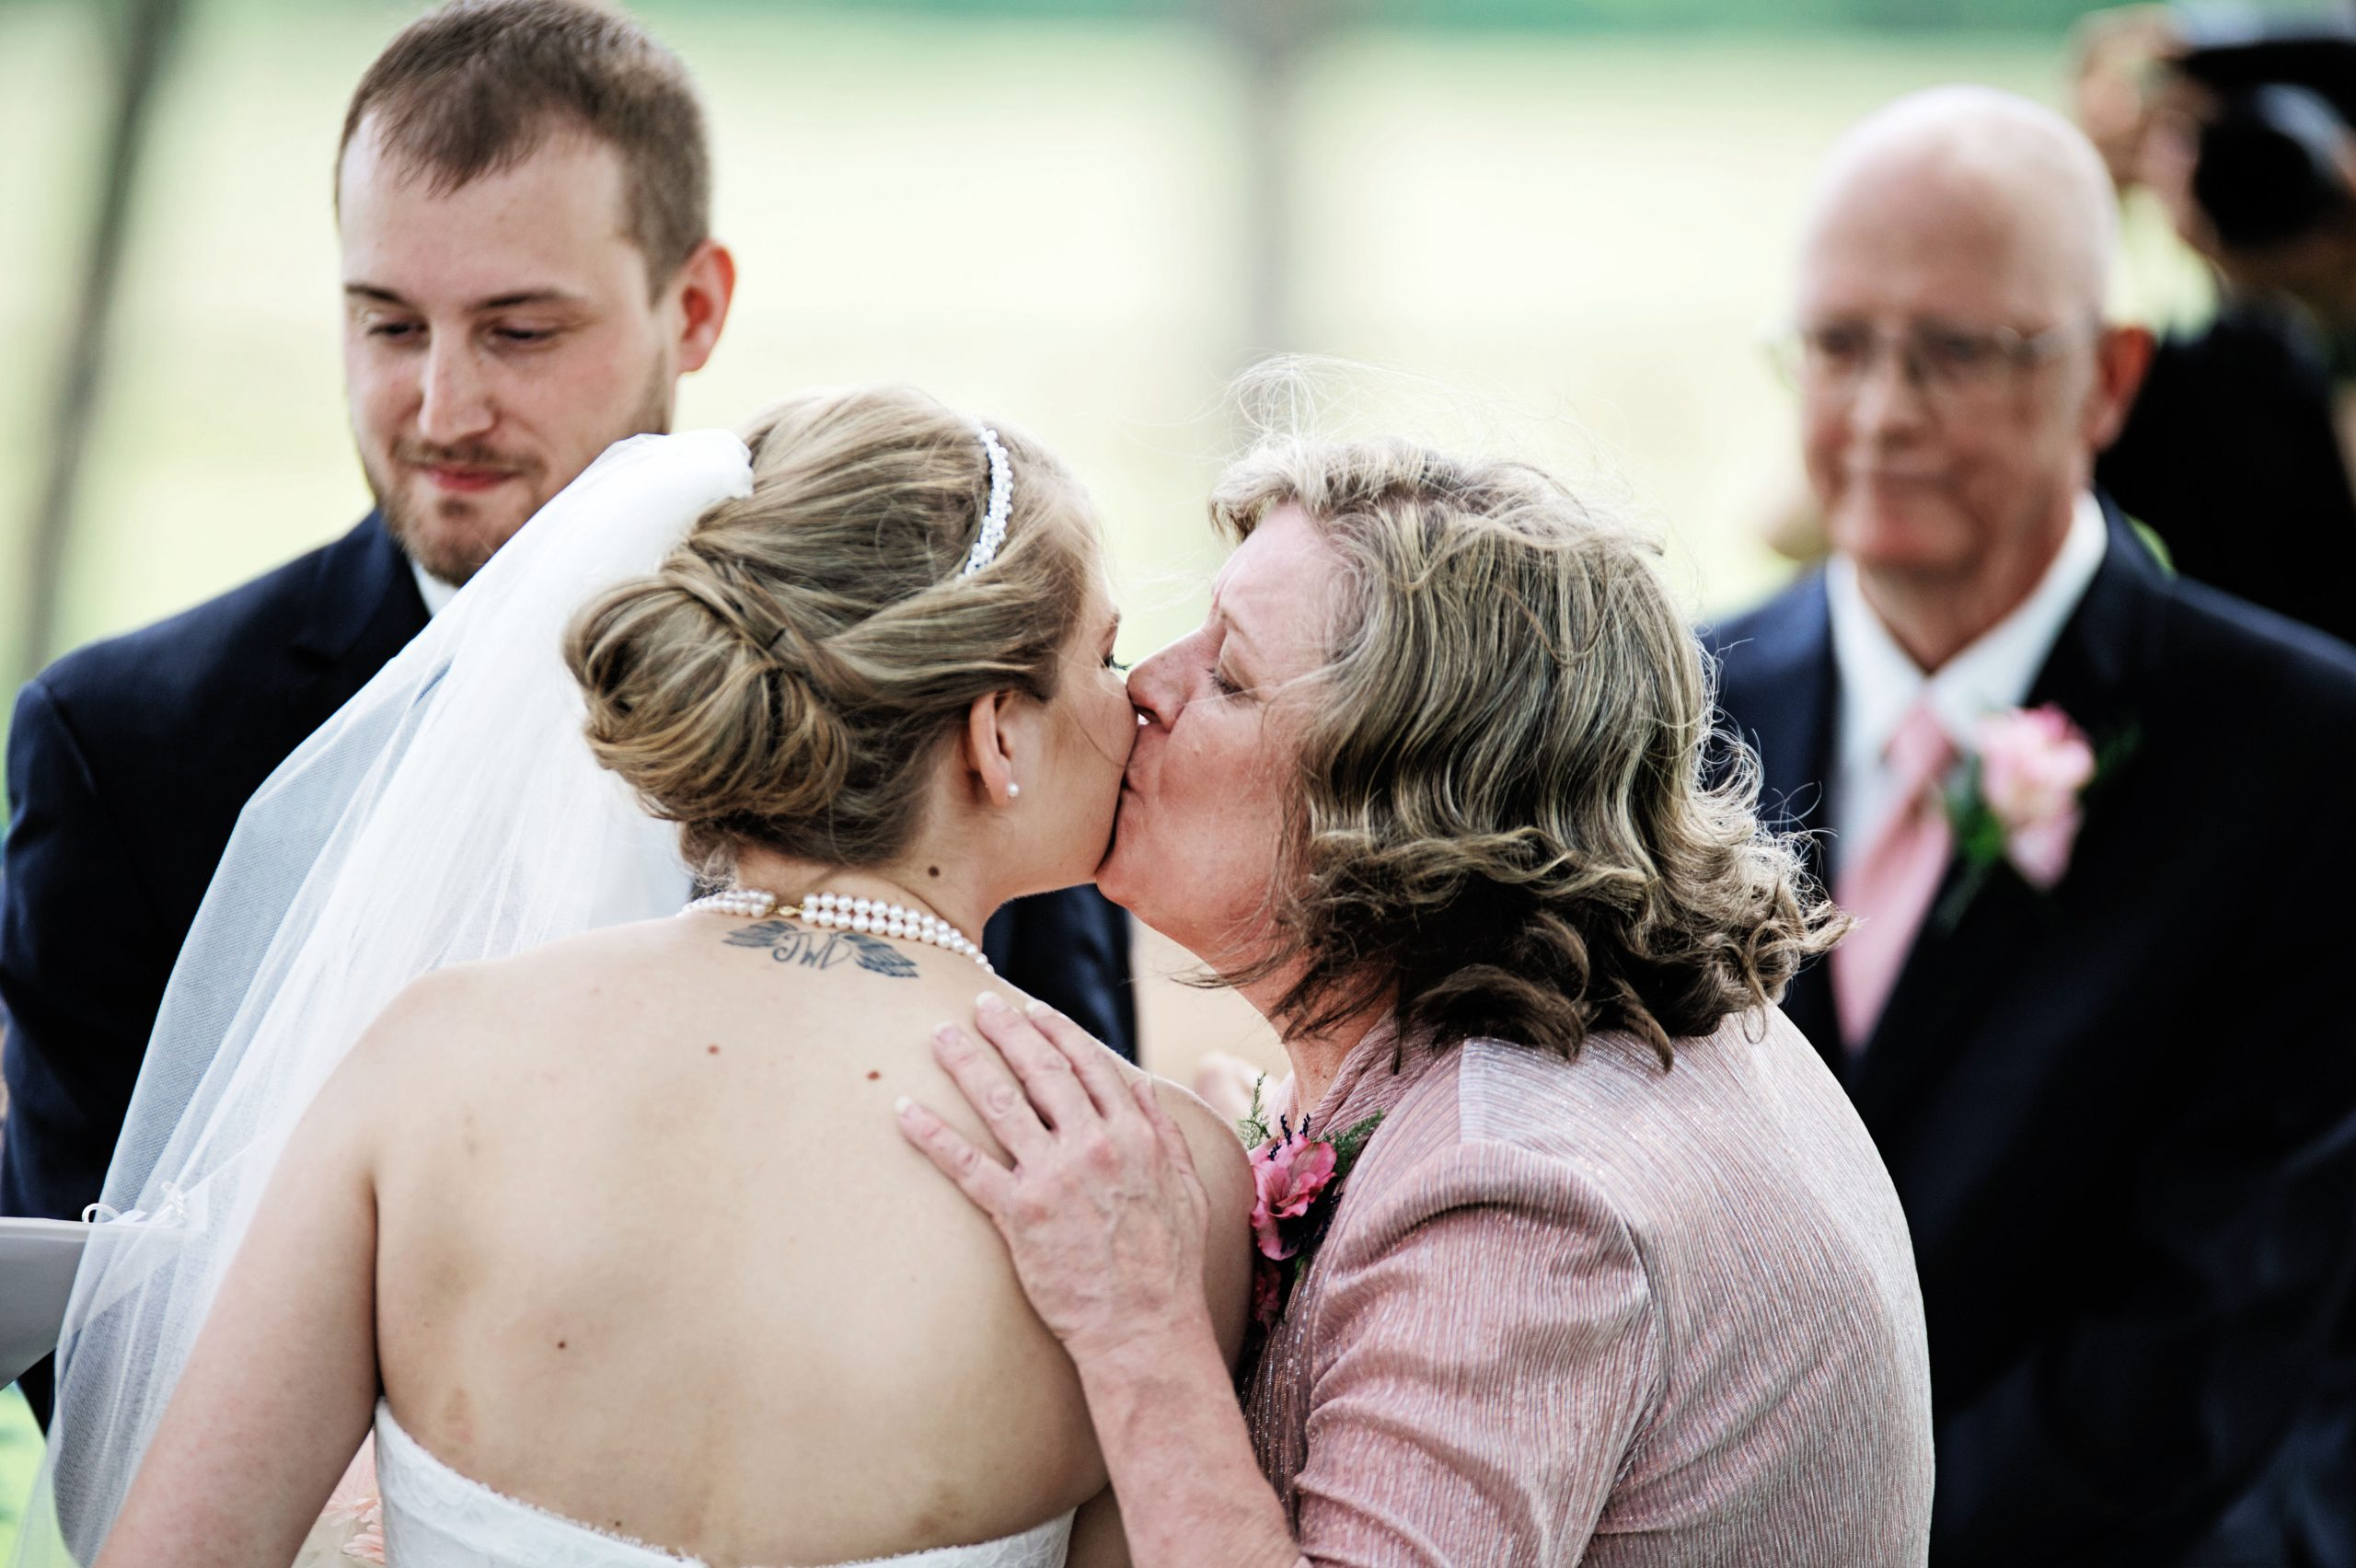 Mother and daughter exchange kisses before starting the wedding ceremony located at Lakeview Farms of York, PA. Lovefusion had the privilege to photograph these special moments. Featured in Dream Weddings.